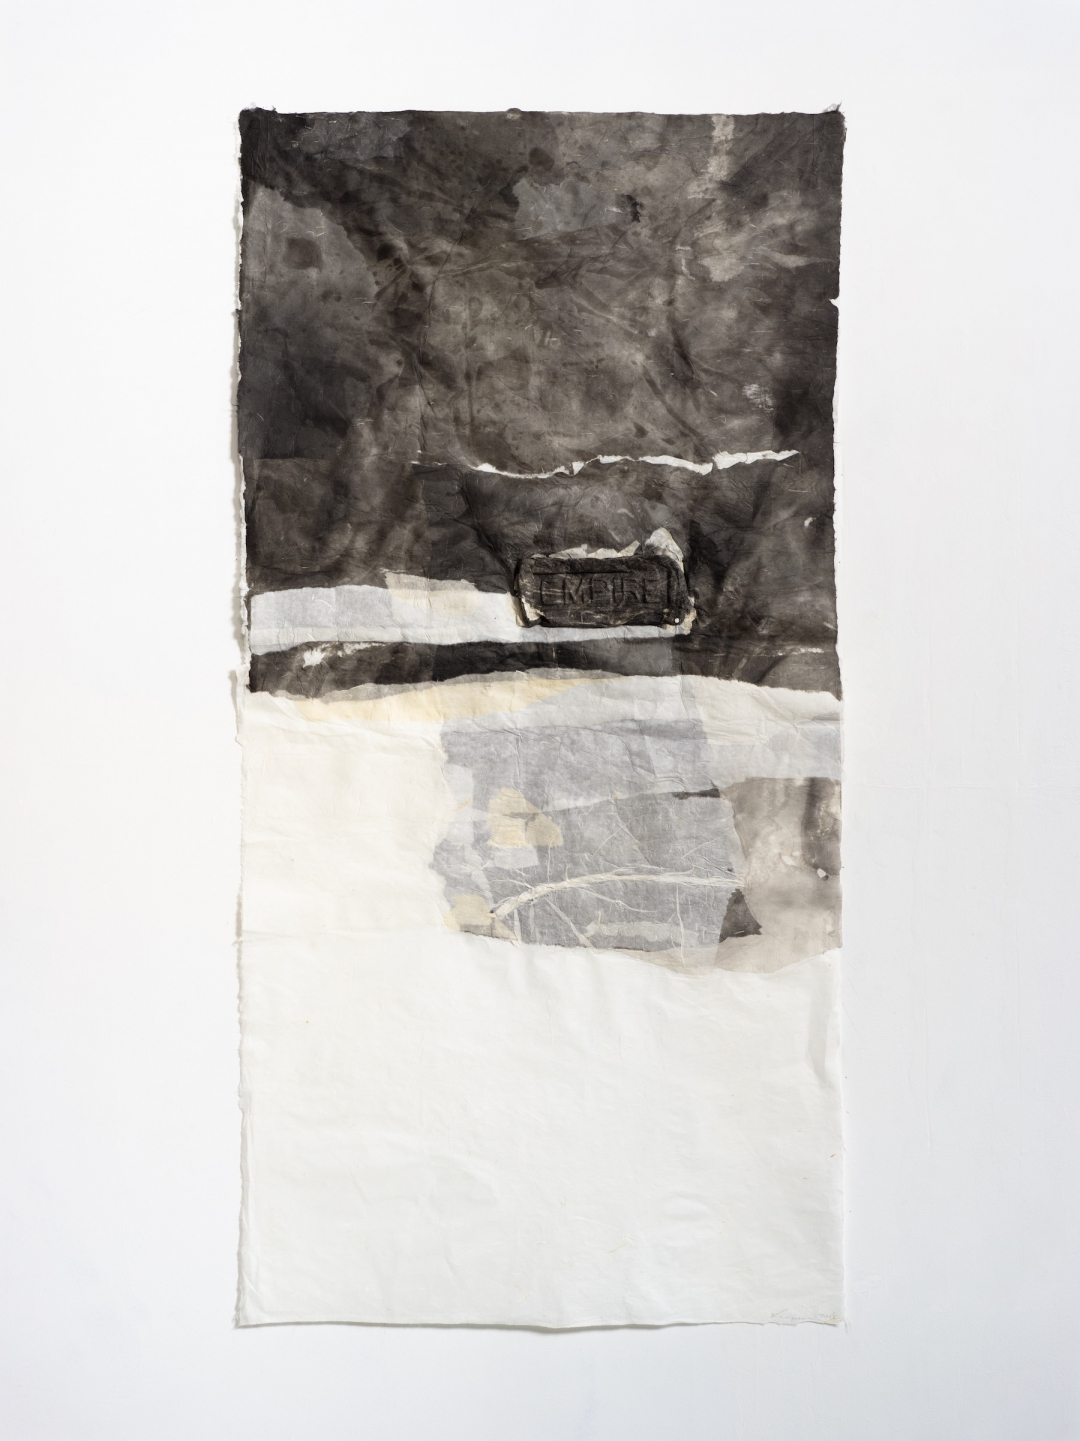 Lin Yan, <i>Common Words - Empire, Pray, Roses 10, 2018</i>, 2018, ink and Xuan paper, 55.5 x 27.6 in 141 x 70 cm